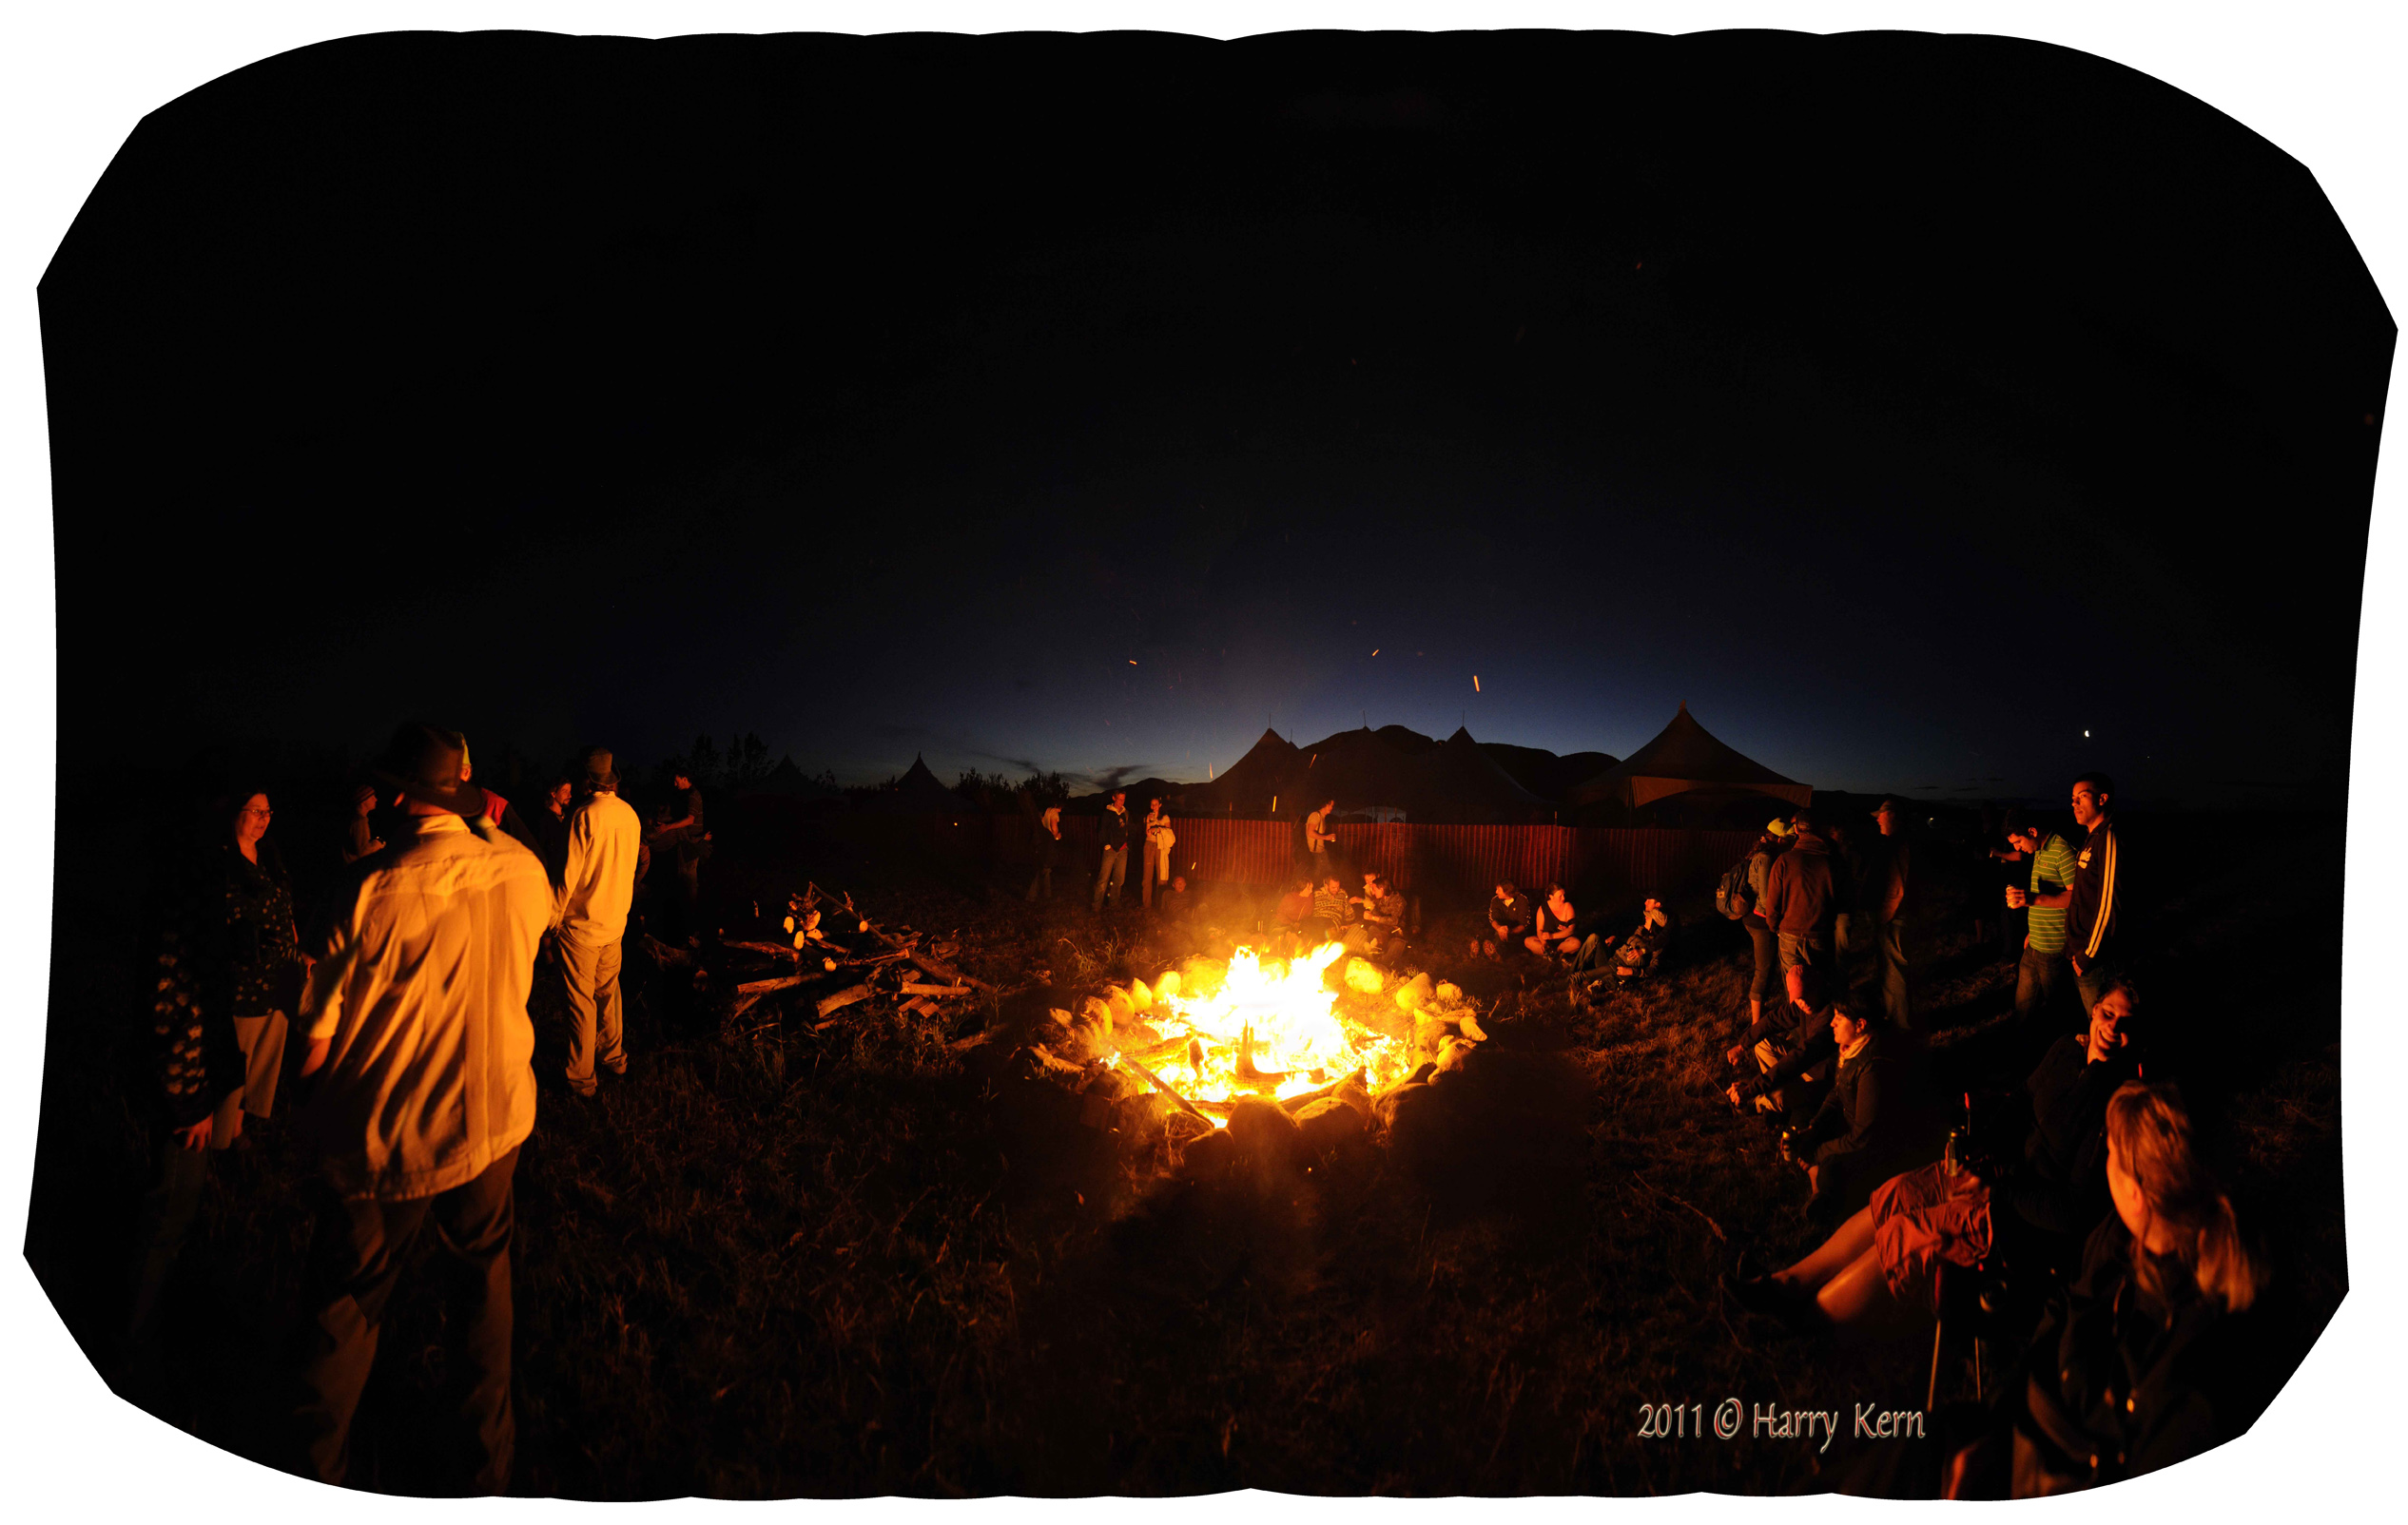 fmmf-2011-bonfire-1-2228x3516-websized